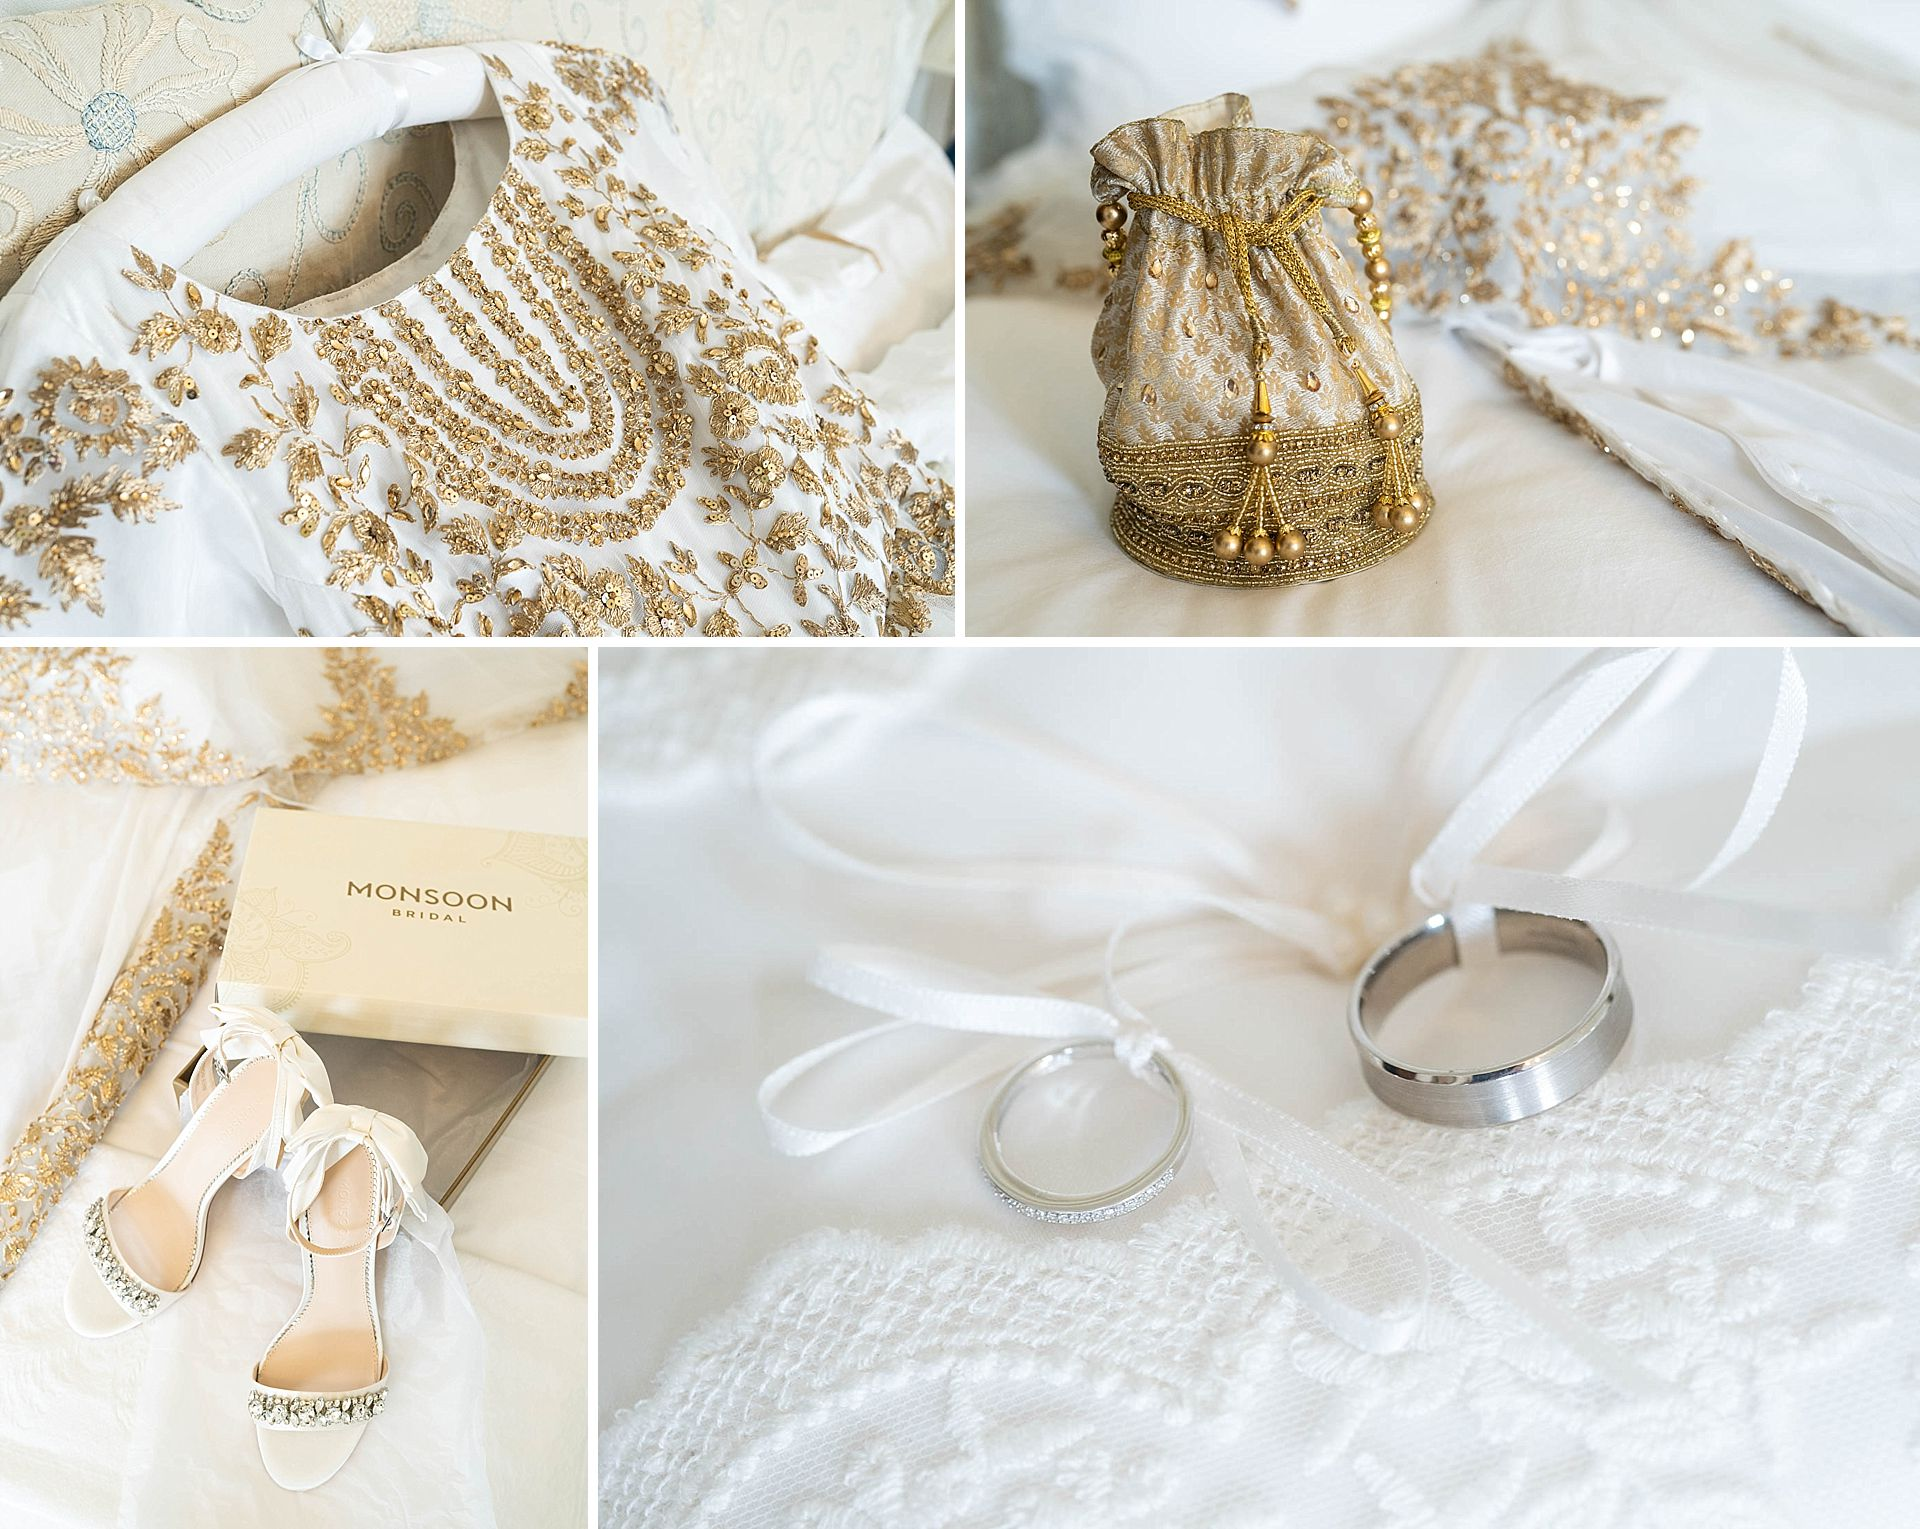 Wedding details at Poundon House